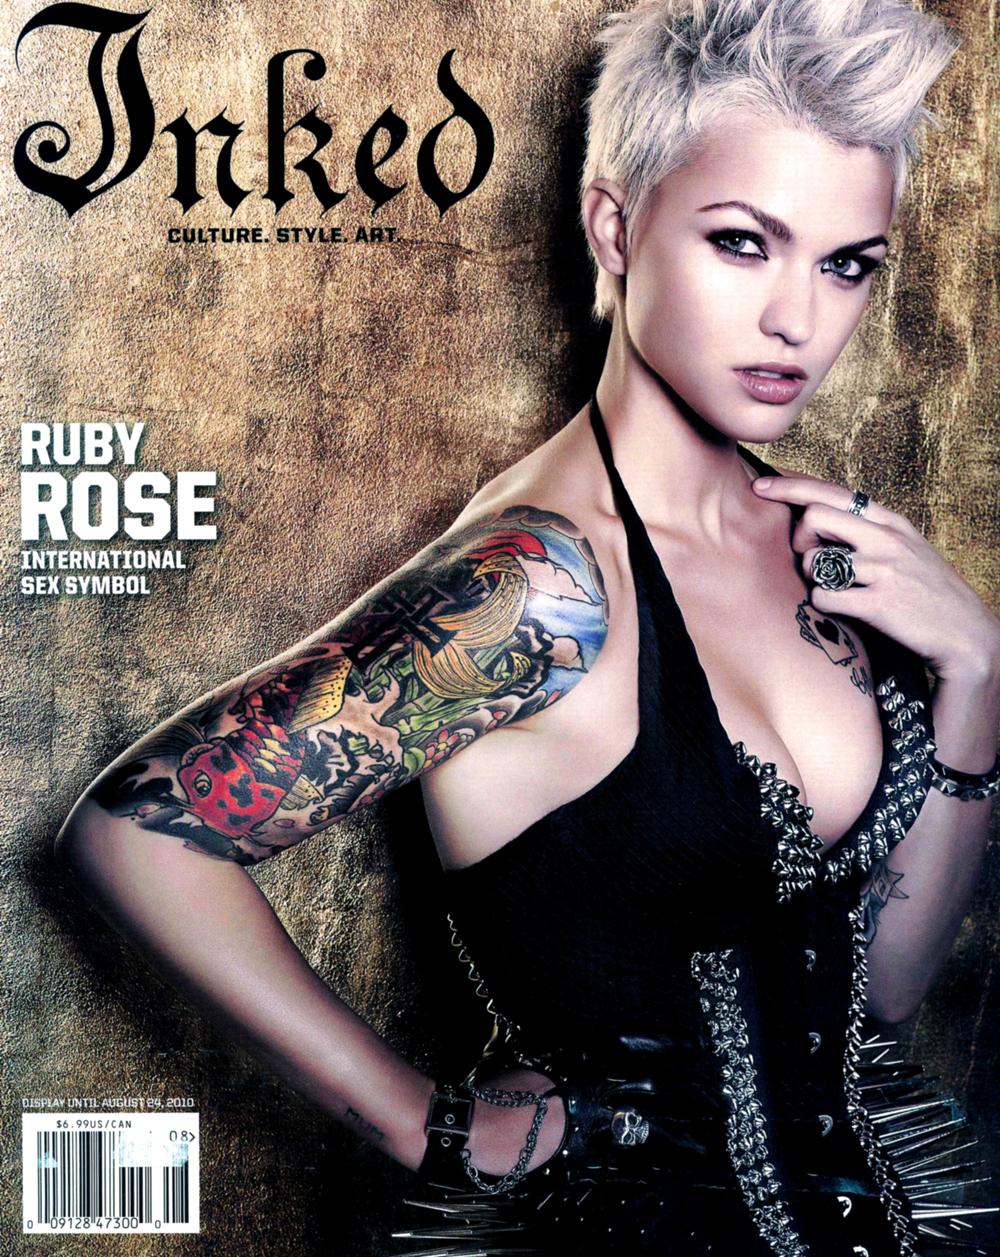 Inked (magazine) | Tattoos Wiki | FANDOM powered by Wikia